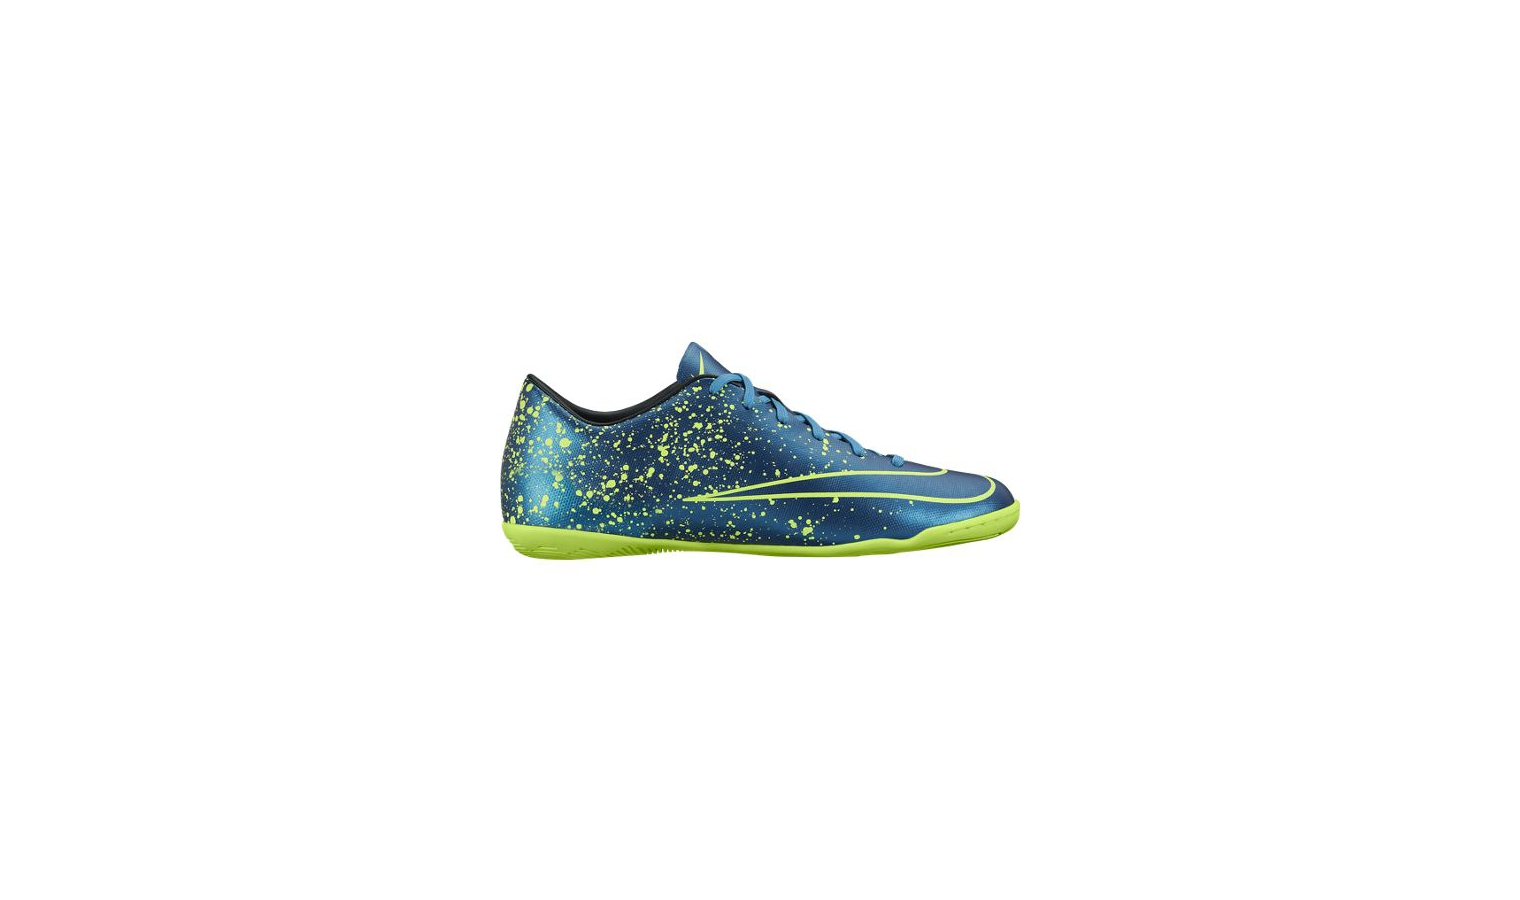 3190f662d0660 Halovky Nike Mercurial VICTORY V (IC) modré | AD Sport.sk